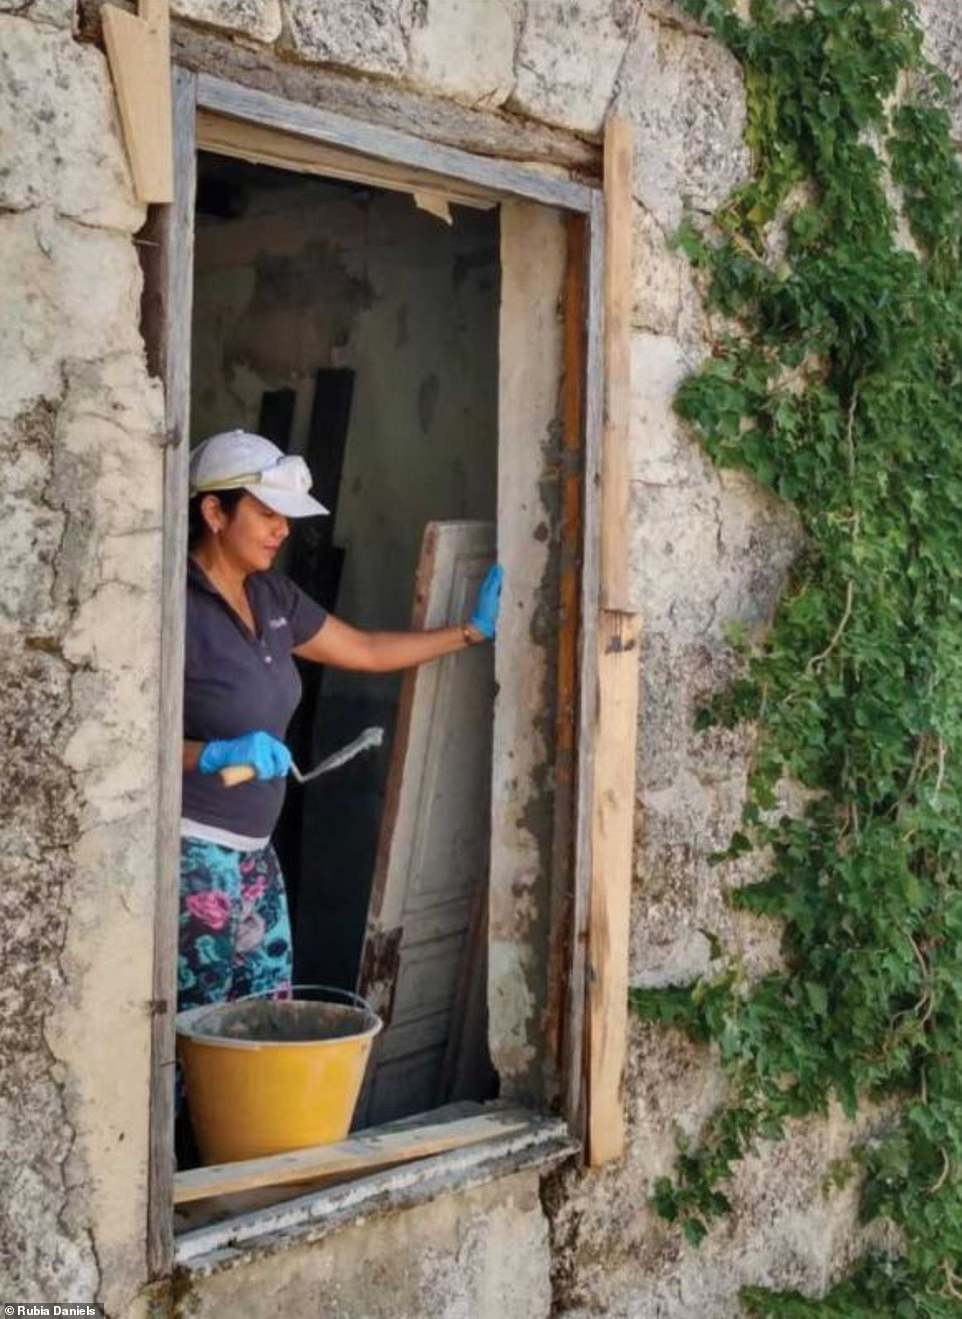 Be prepared! Daniels said others should do research before arriving. In Mussomeli, buyers must renovate within three years or face losing a reported €5,000 deposit